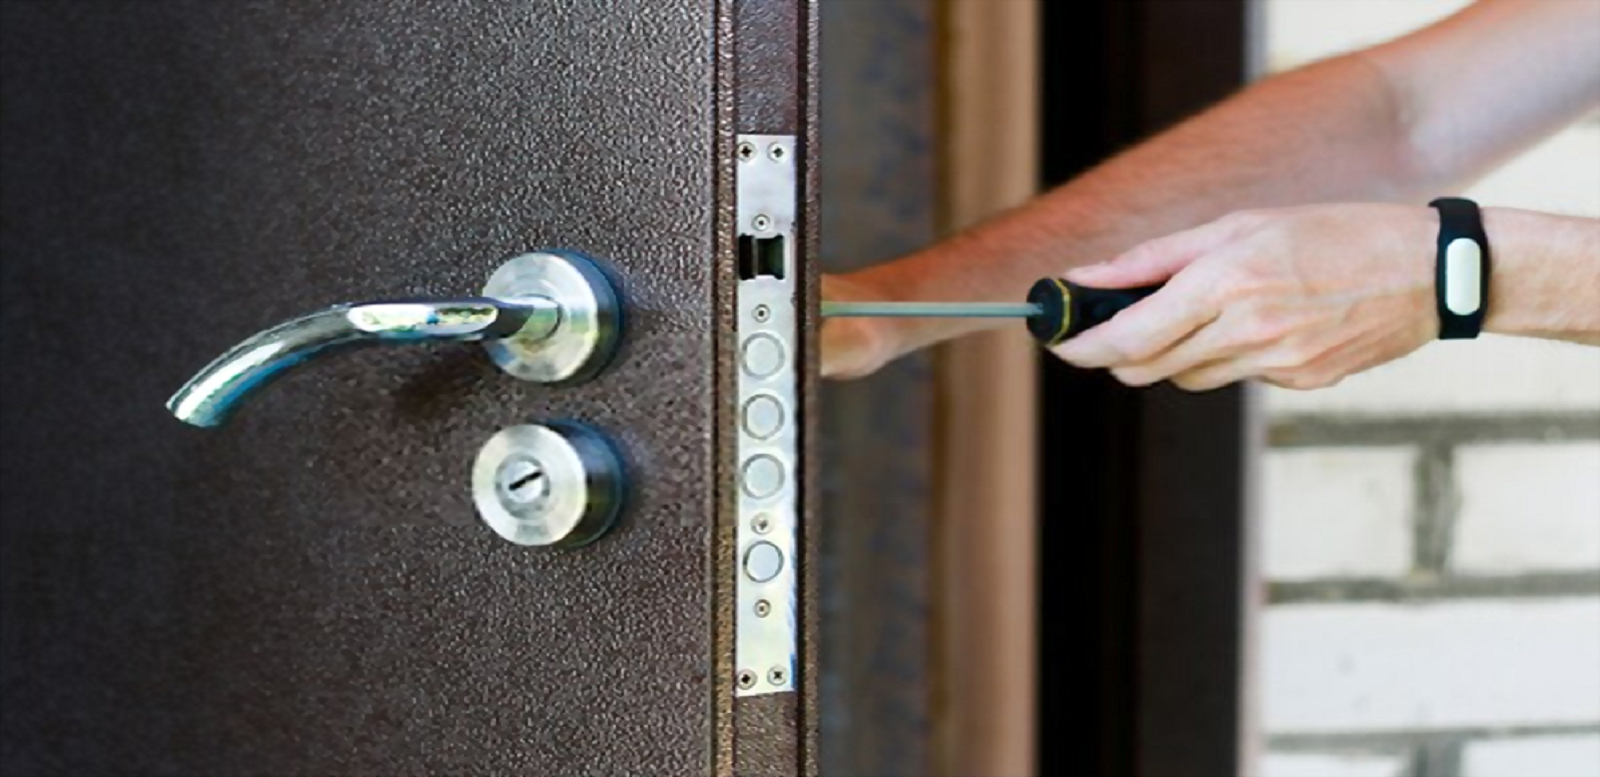 Experienced Home Burglary? Call A 24 Hour Locksmith Immediately